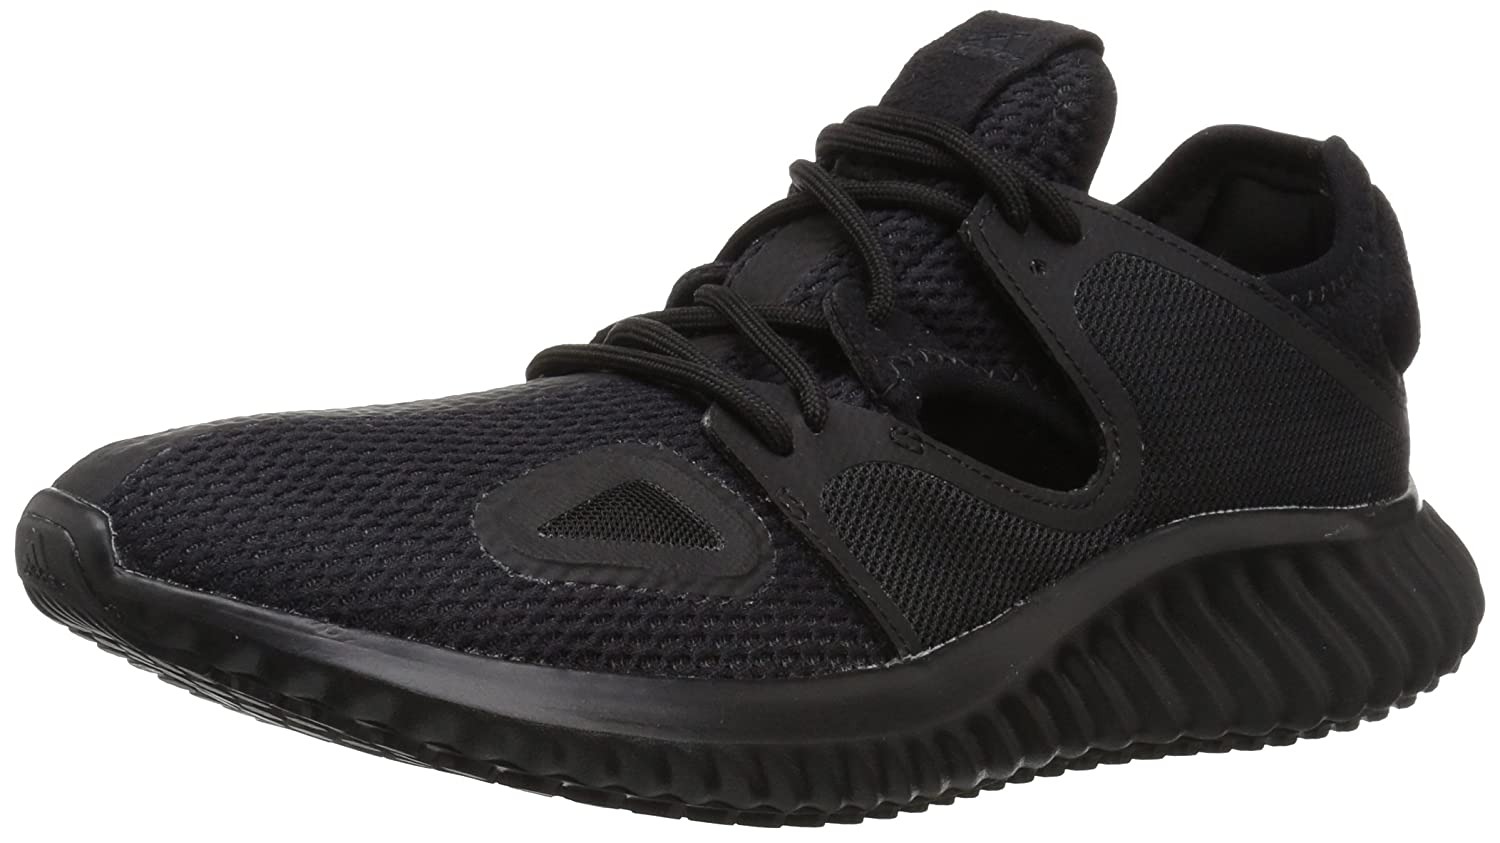 adidas Women's Lux Clima w Running Shoe B072FH7J25 11 B(M) US|Core Black/Carbon/Core Black